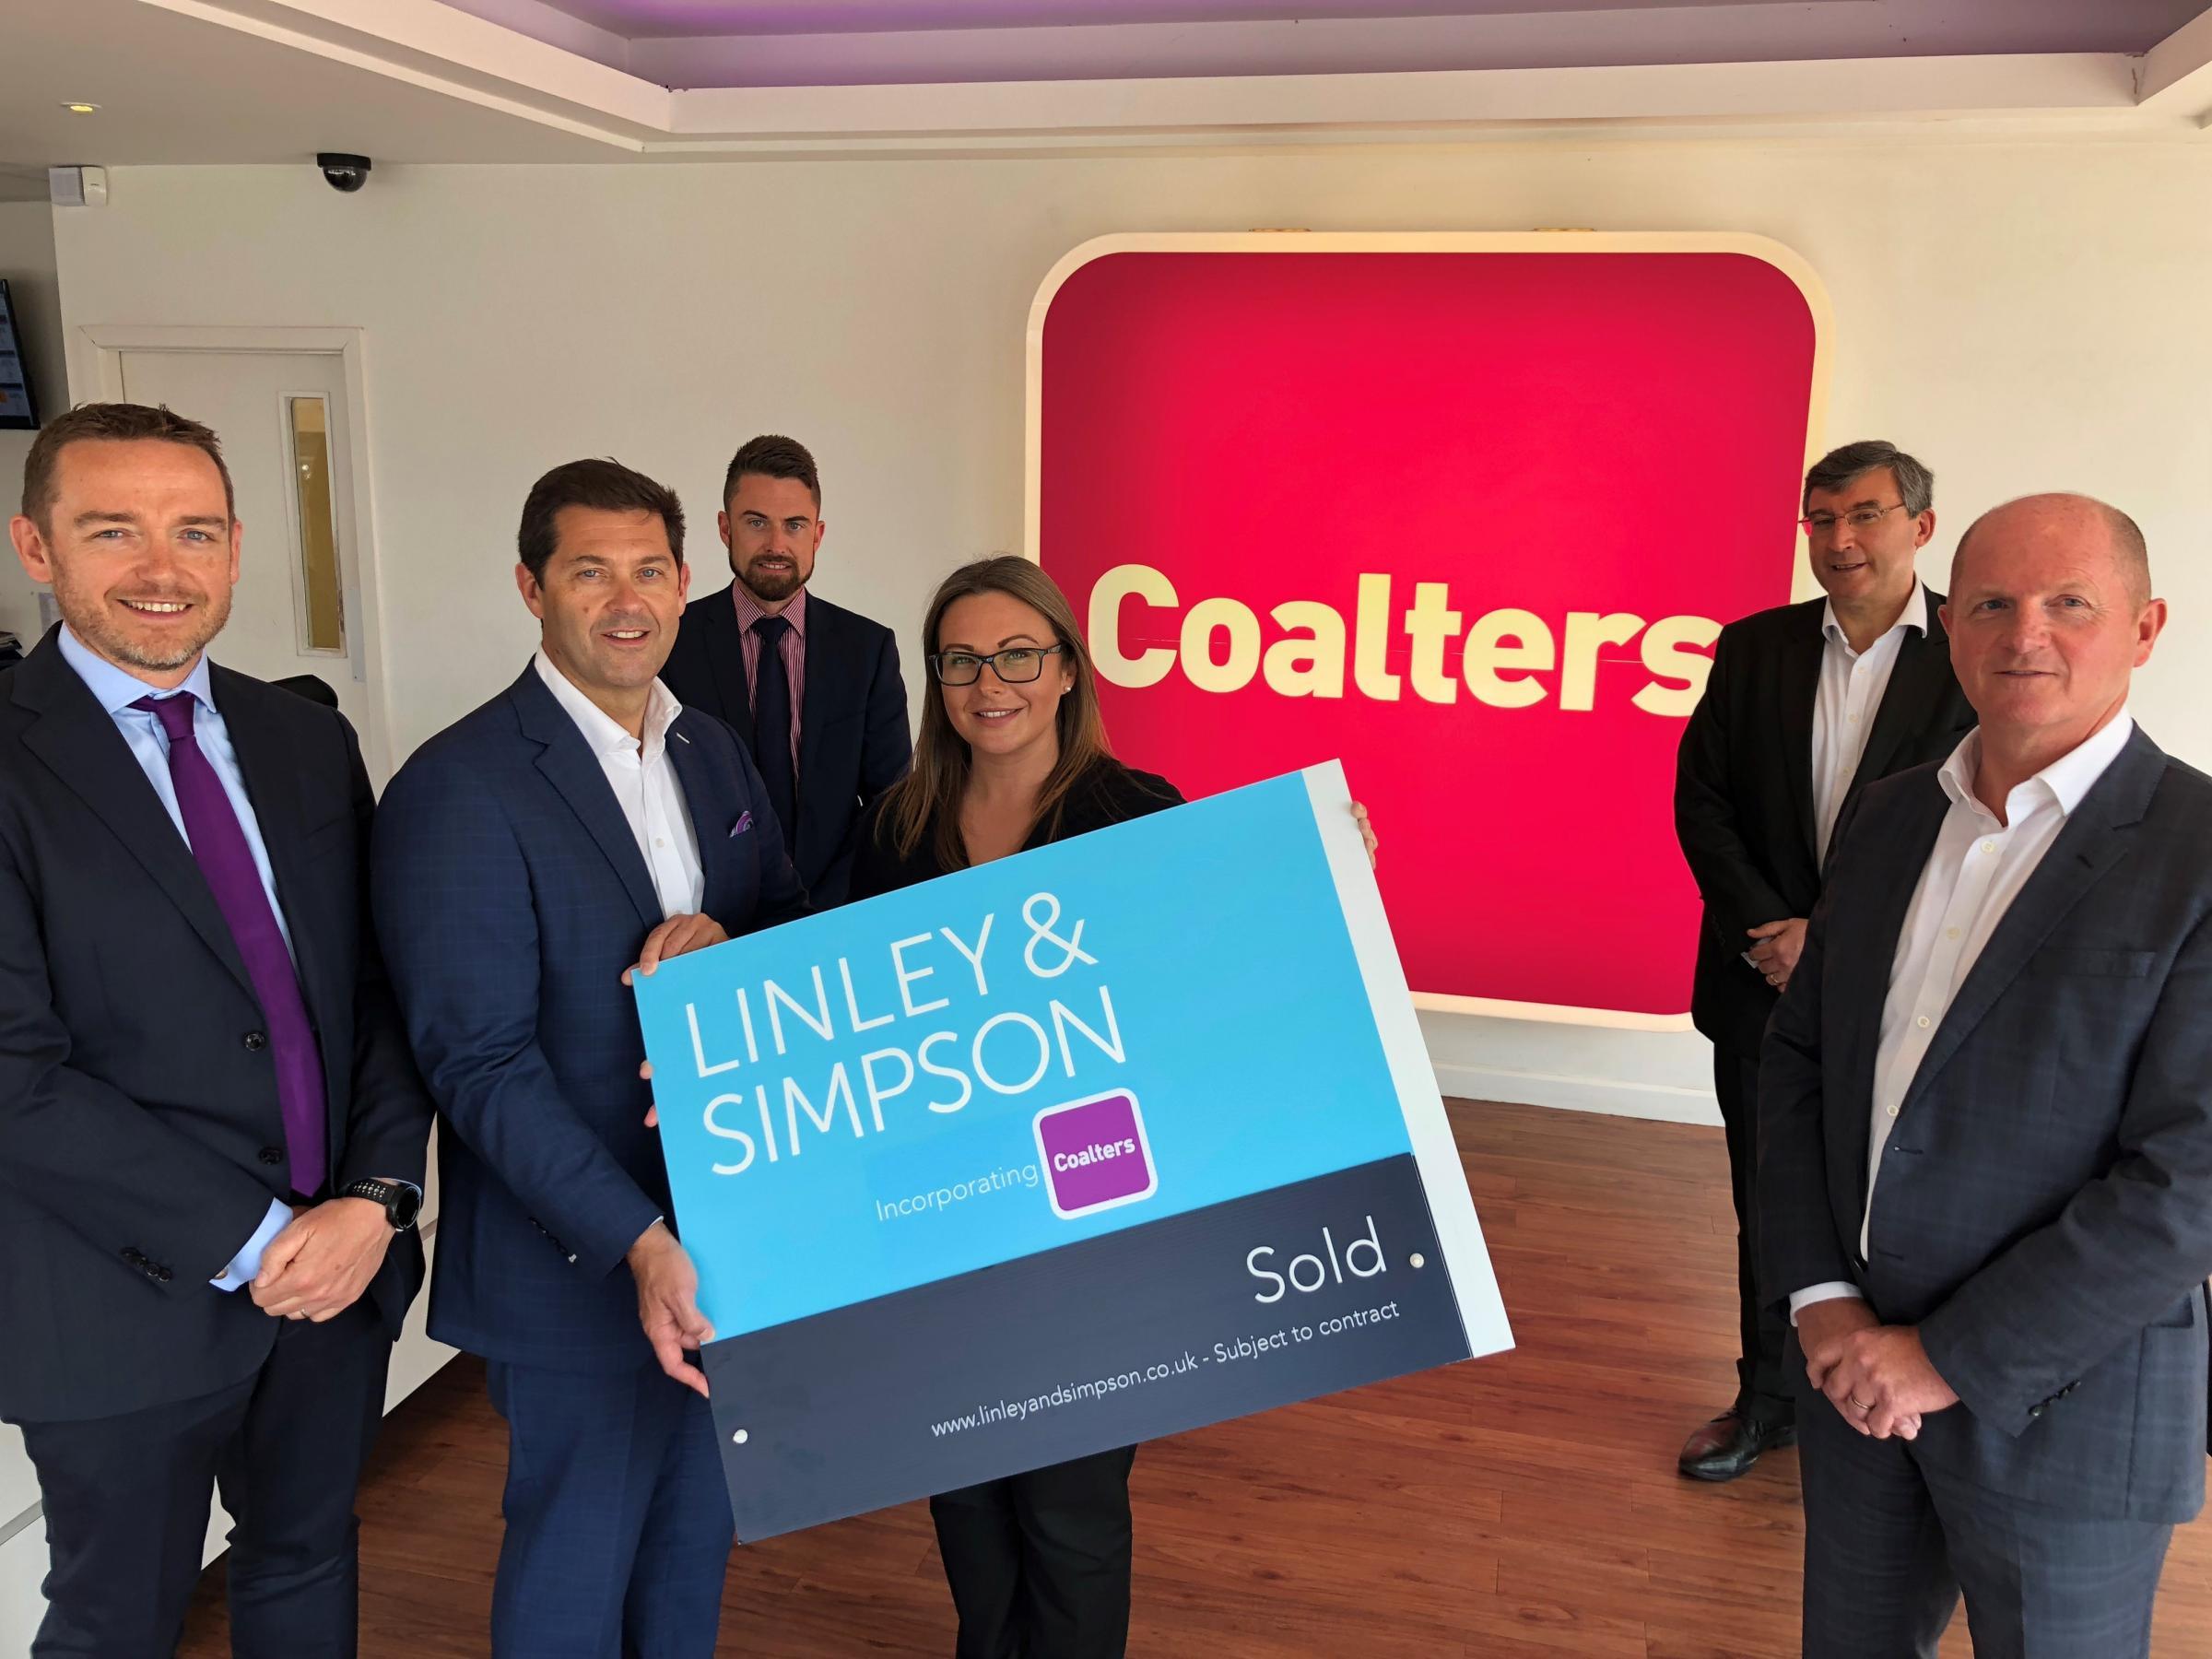 From left Reuben Barrett, founder of Coalters, with Linley & Simpson's Nick Simpson, Mark Sheridan, Vicki Mulroney, Mark Christopher and Will Linley.